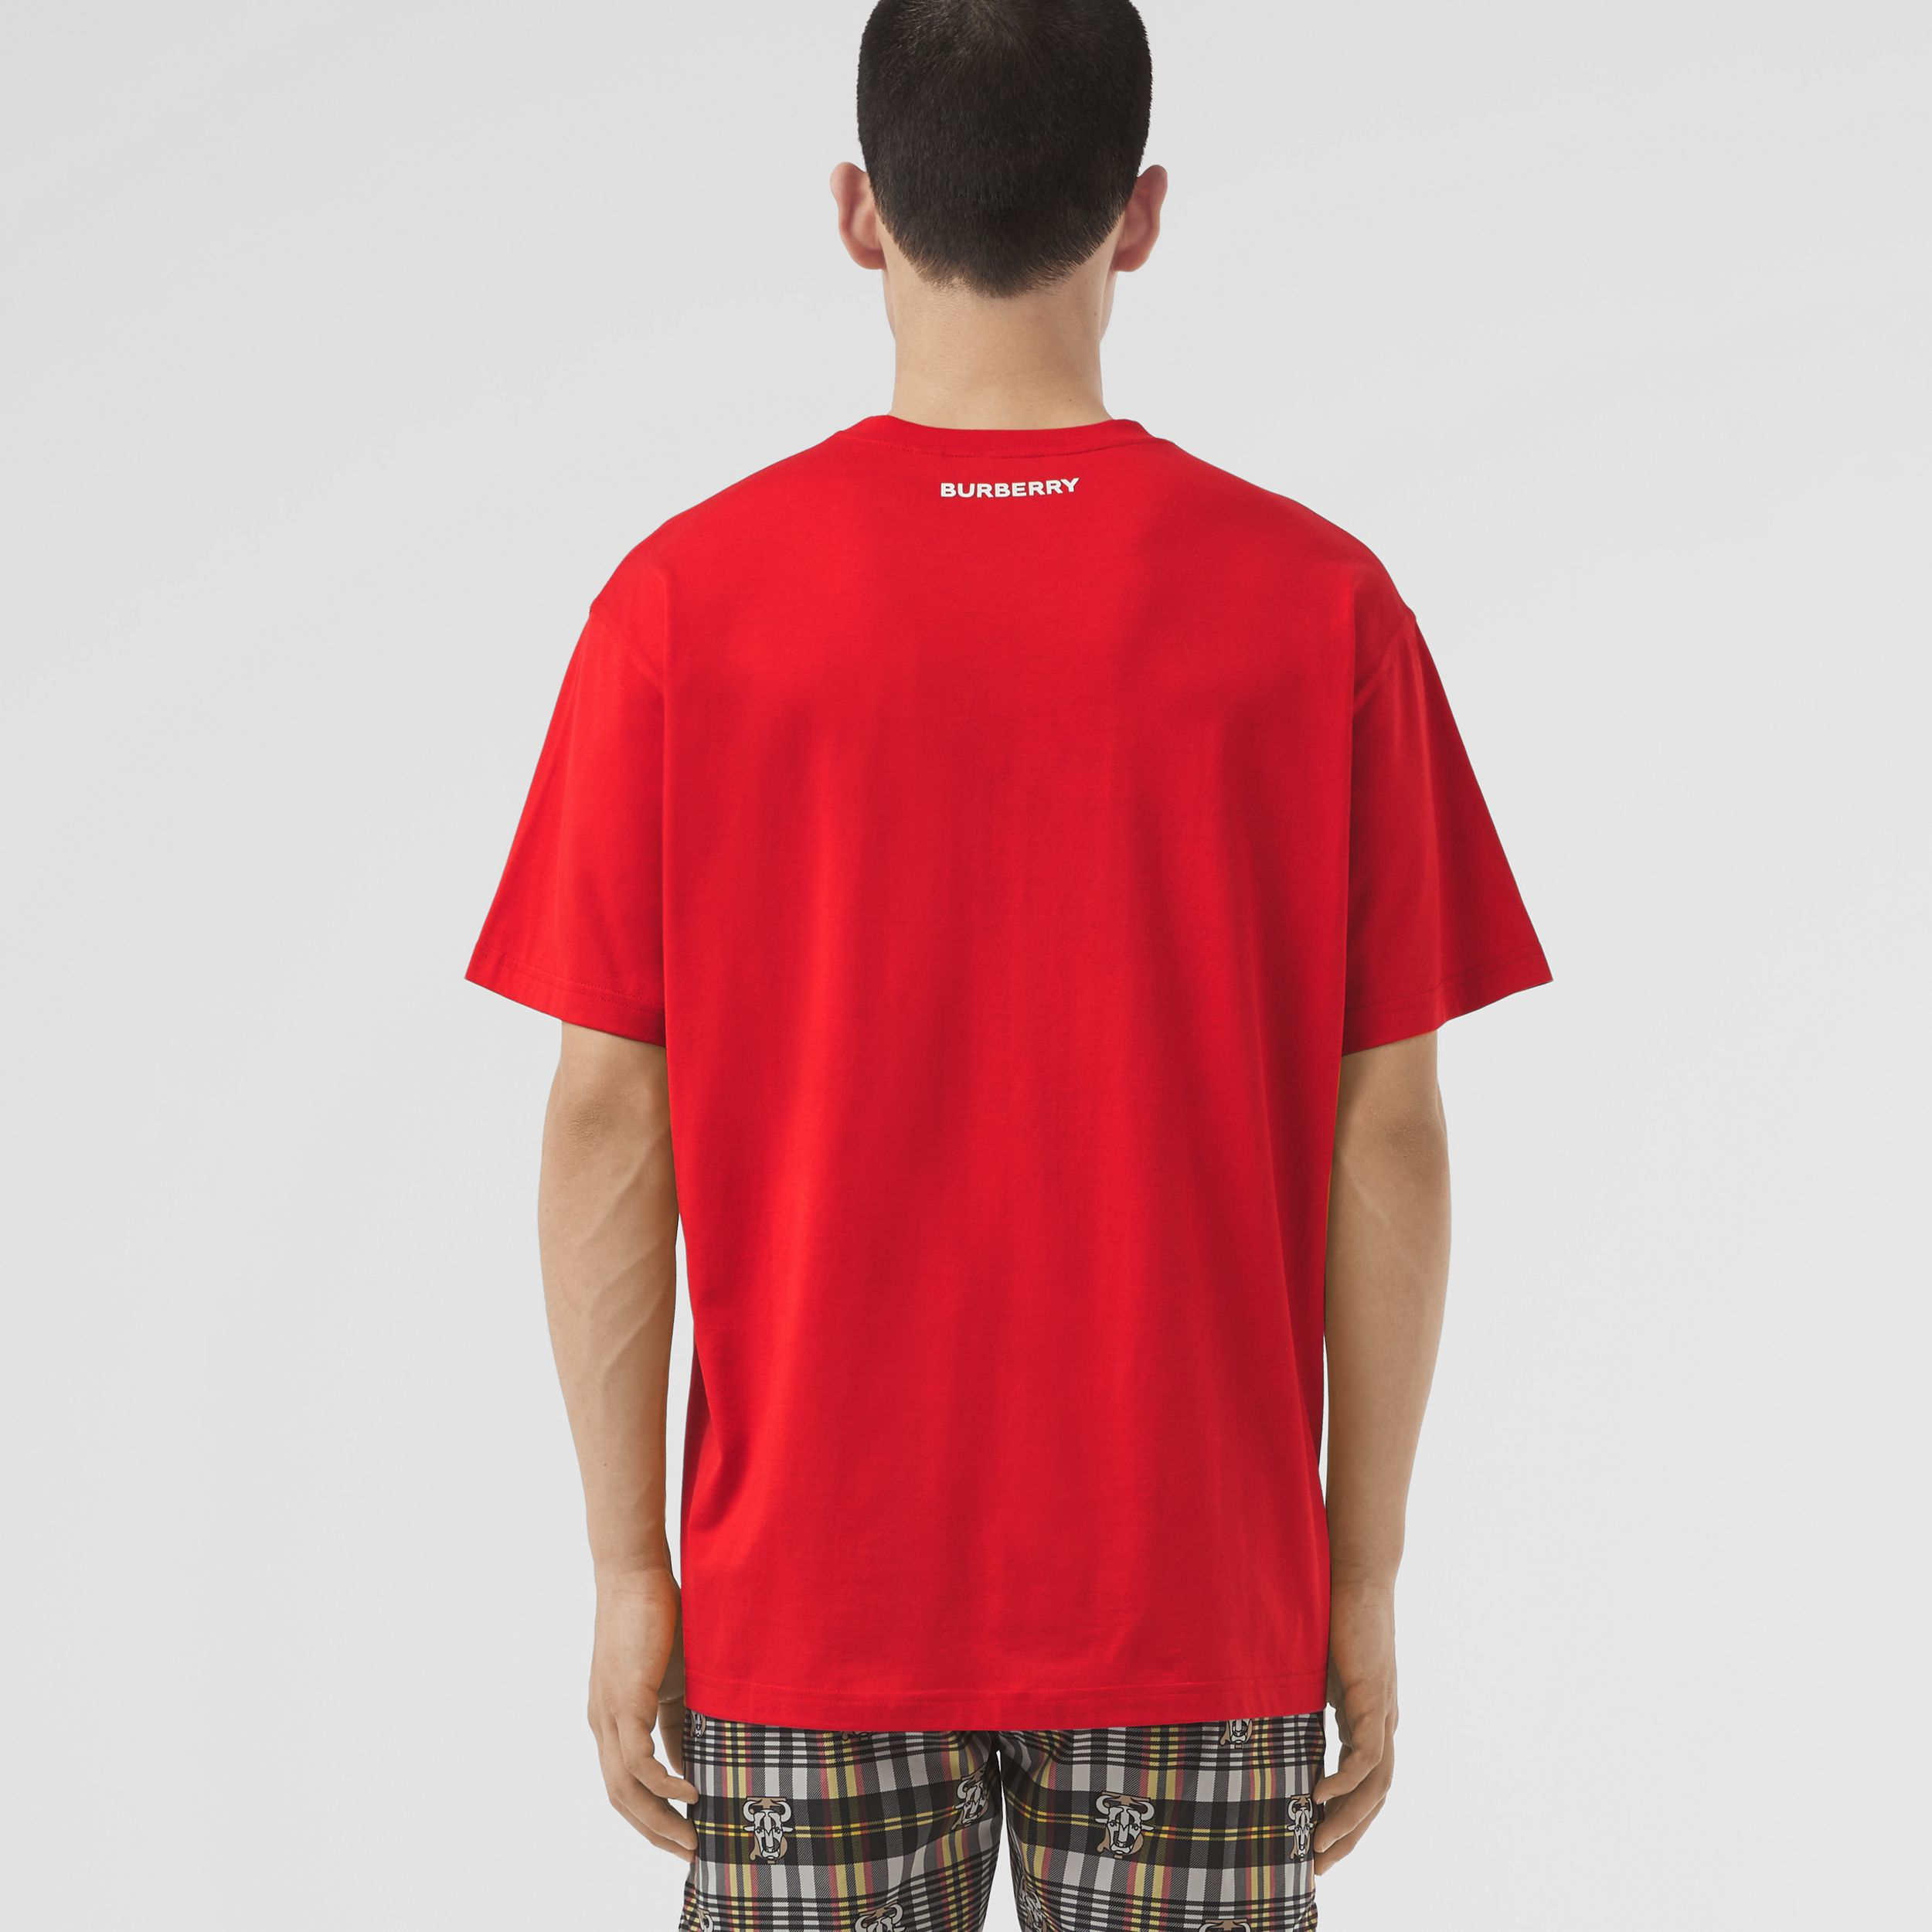 Montage Print Cotton T-shirt – Unisex in Bright Red | Burberry - 3